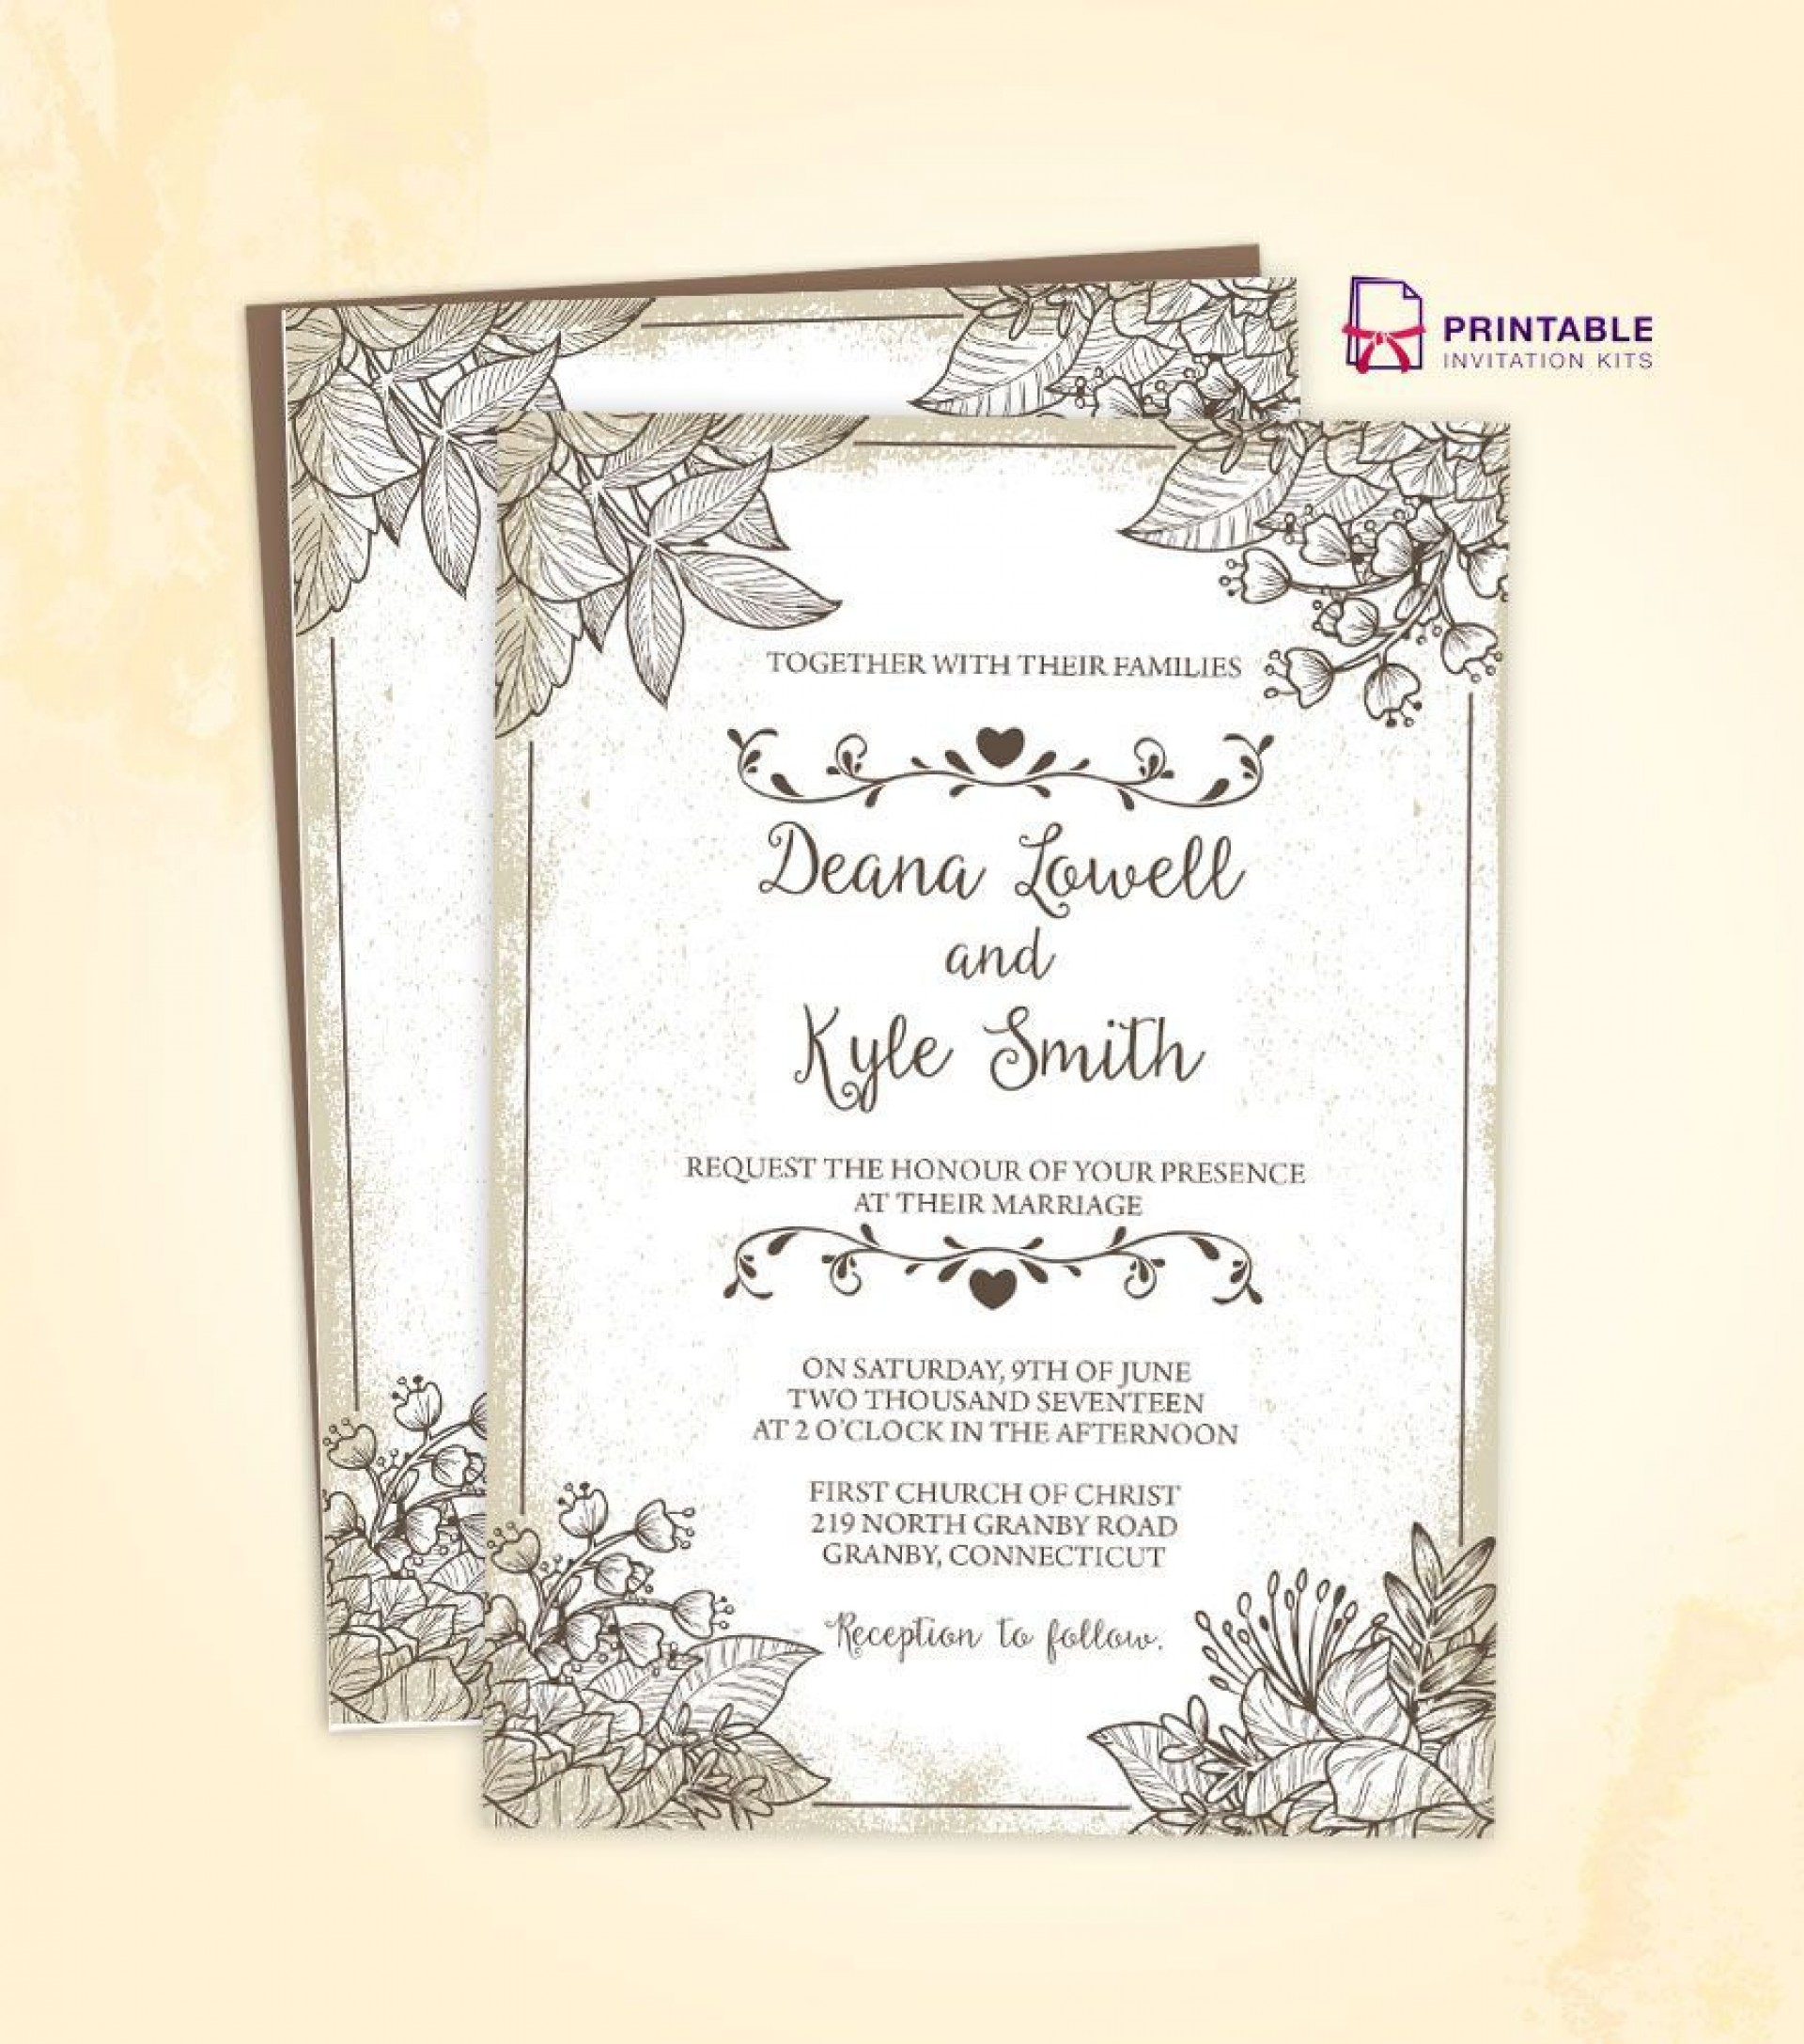 002 Staggering Free Download Wedding Invitation Template For Word Photo  Microsoft Indian1920